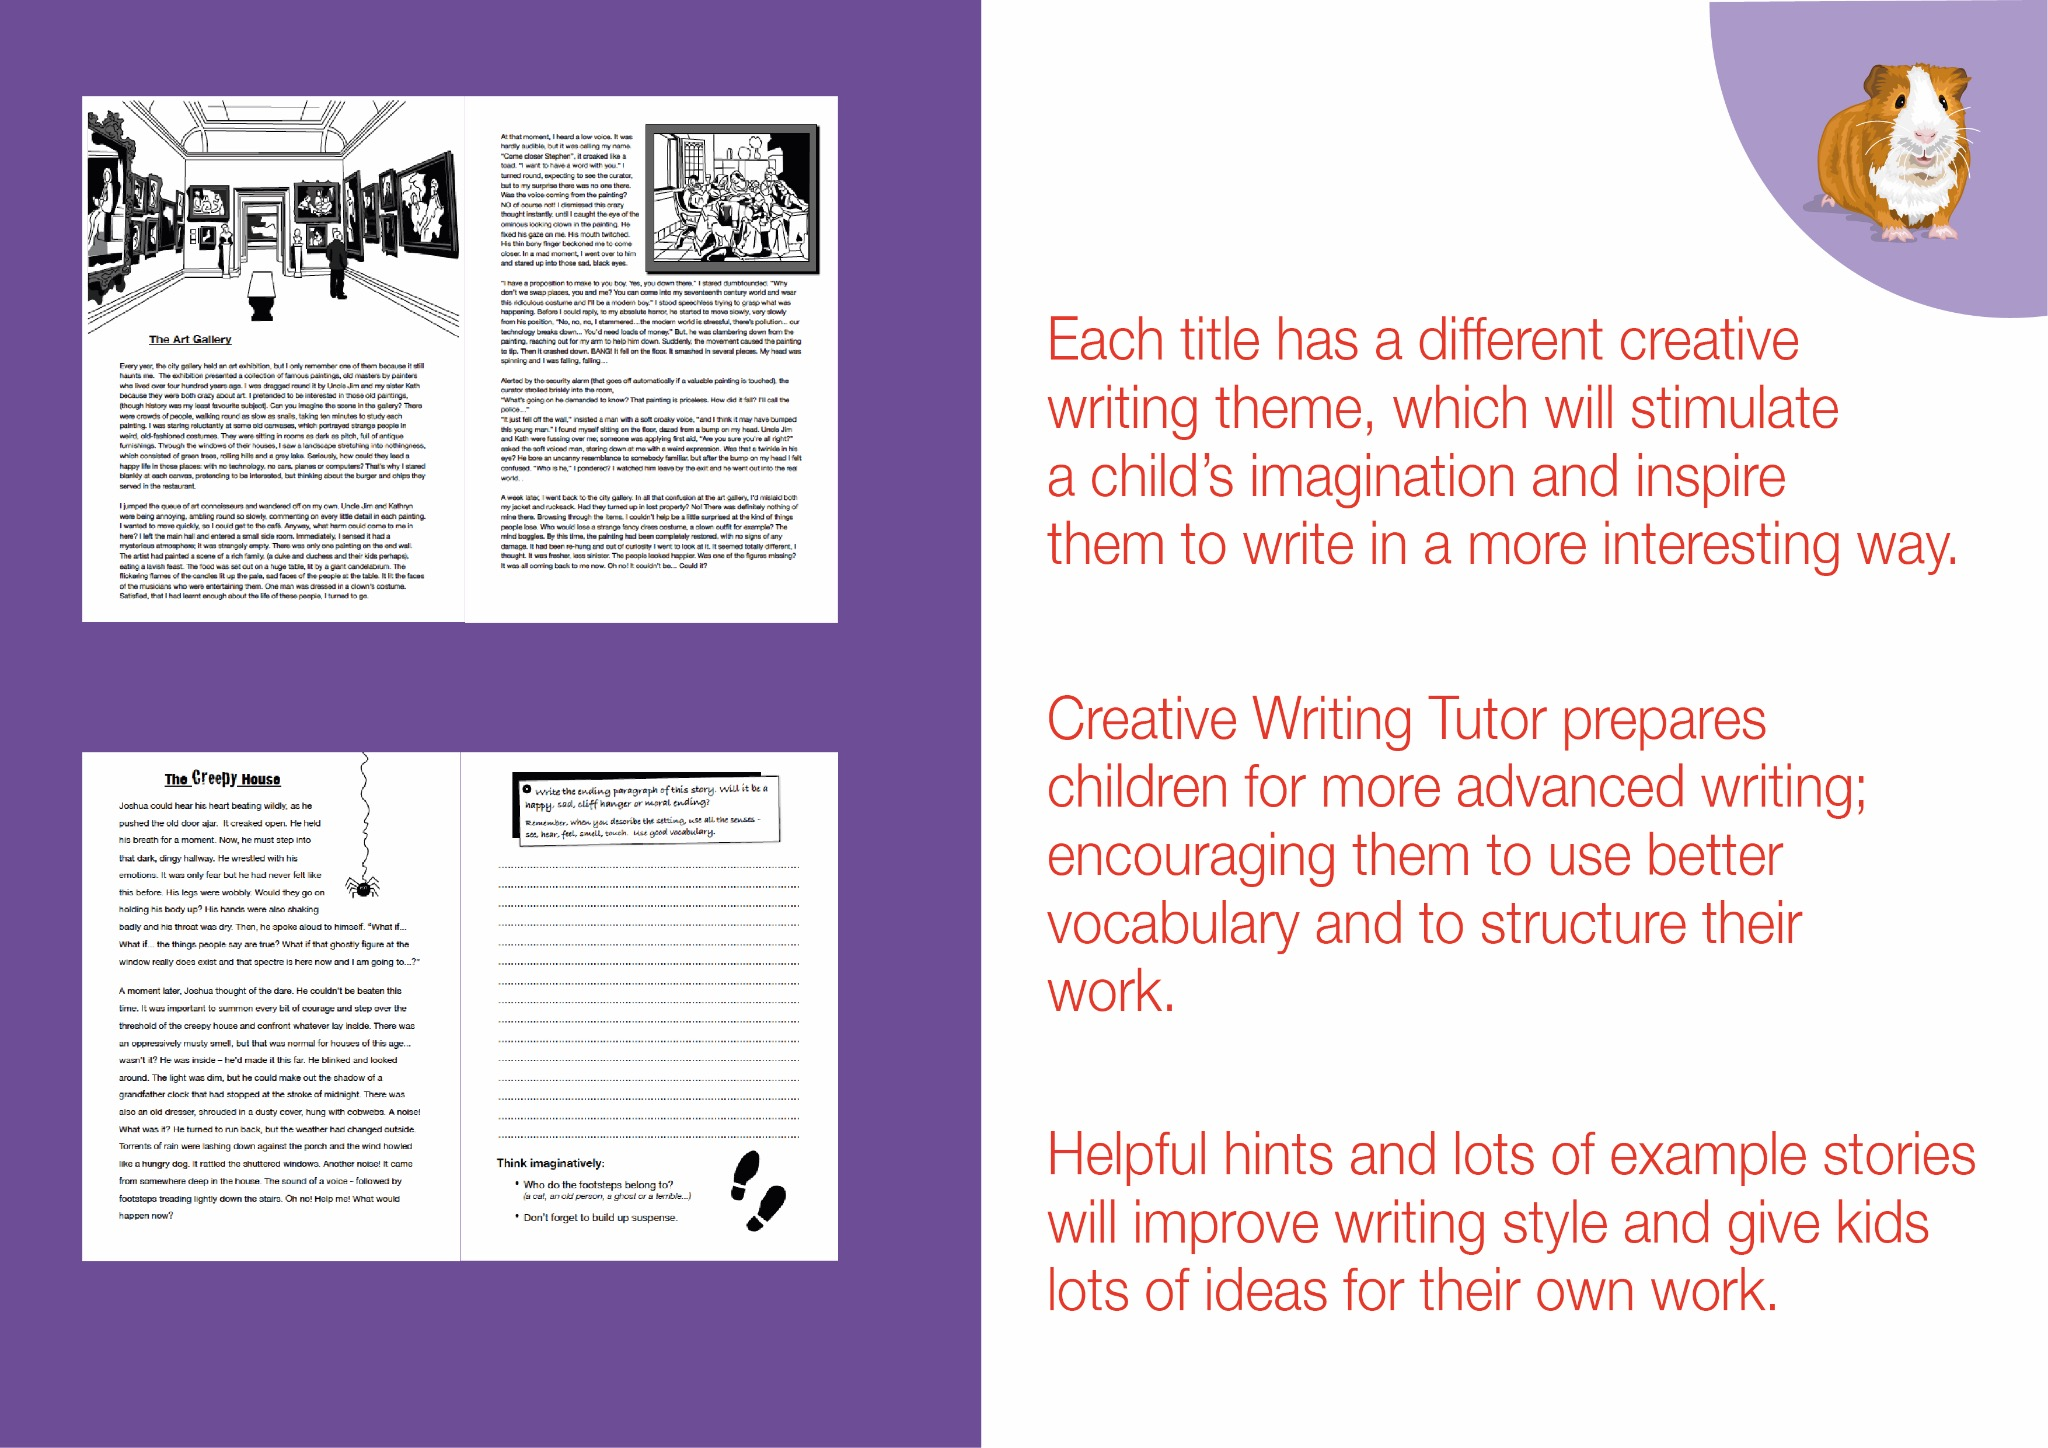 At The Stroke Of Midnight: Brush Up On Your Writing Skills (Creative Writing Tutor) ages 9-13 years